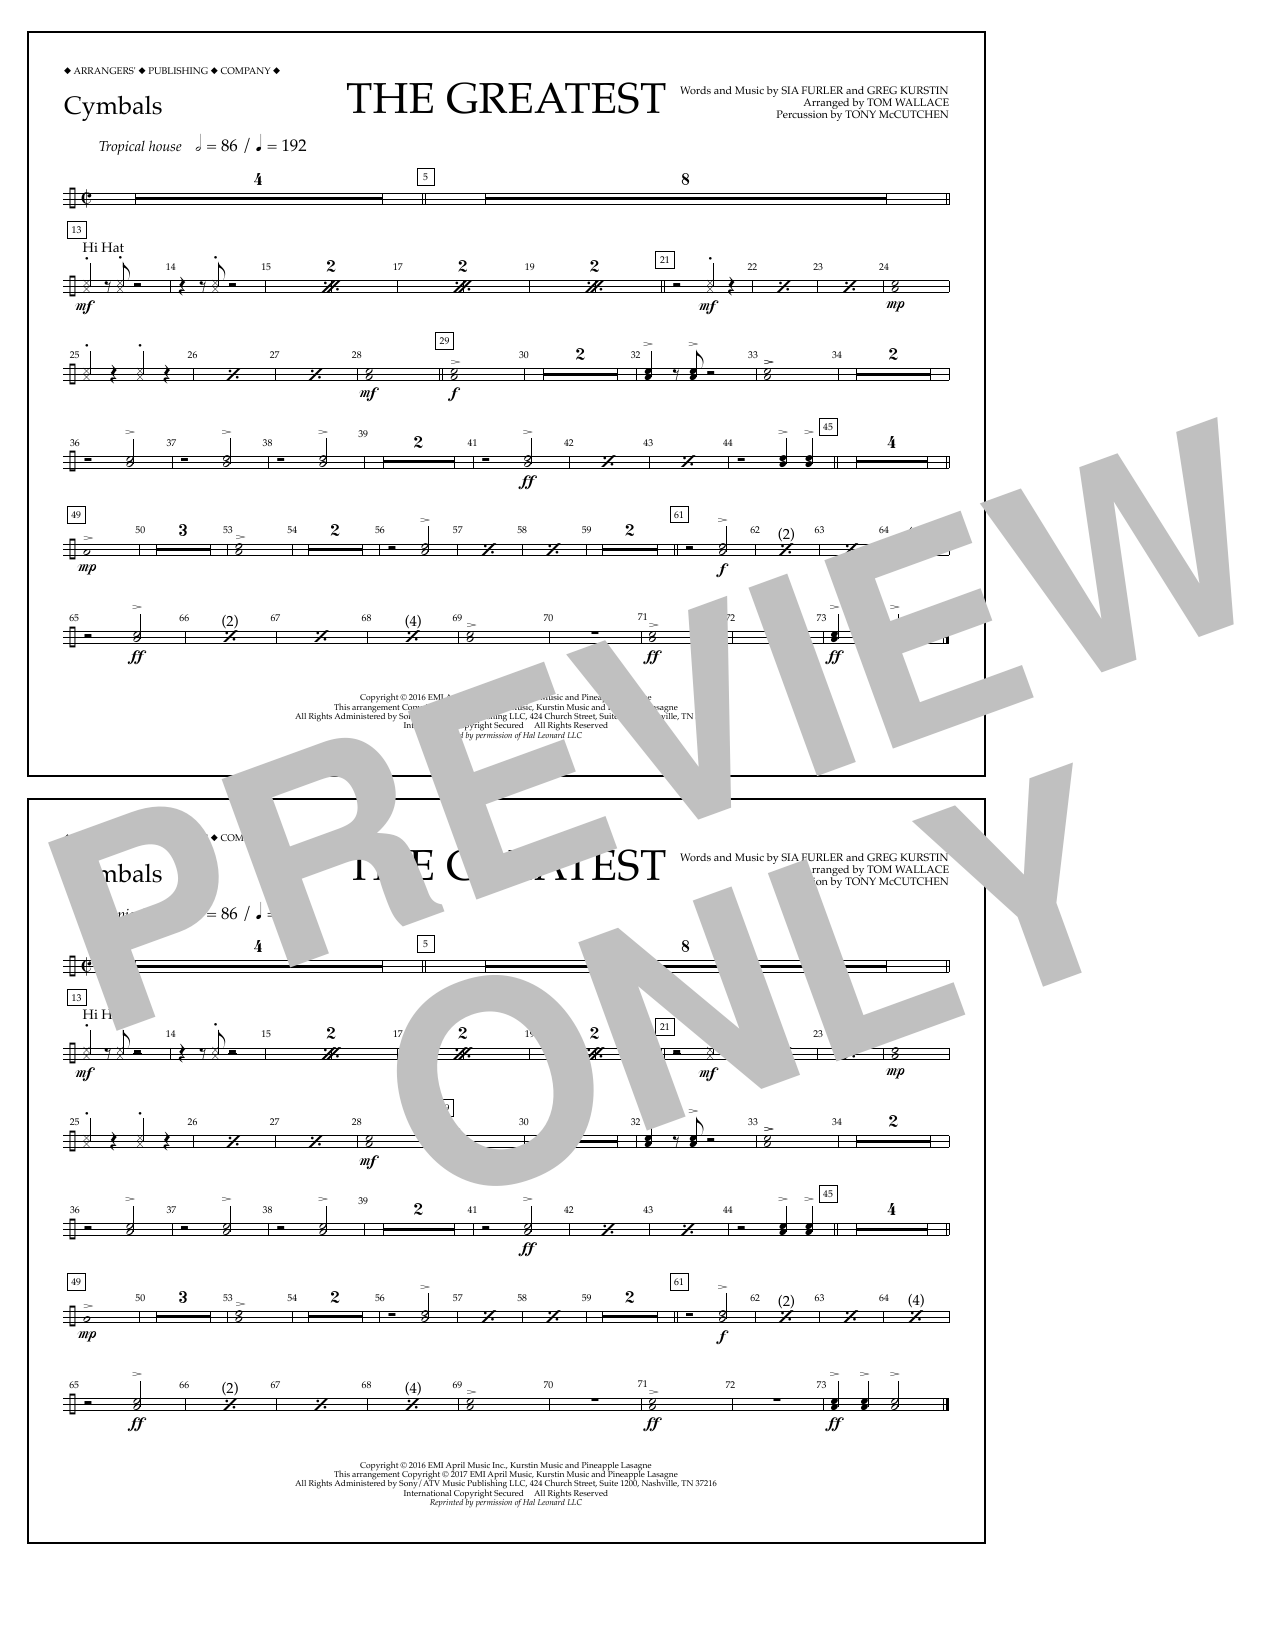 The Greatest - Cymbals Sheet Music